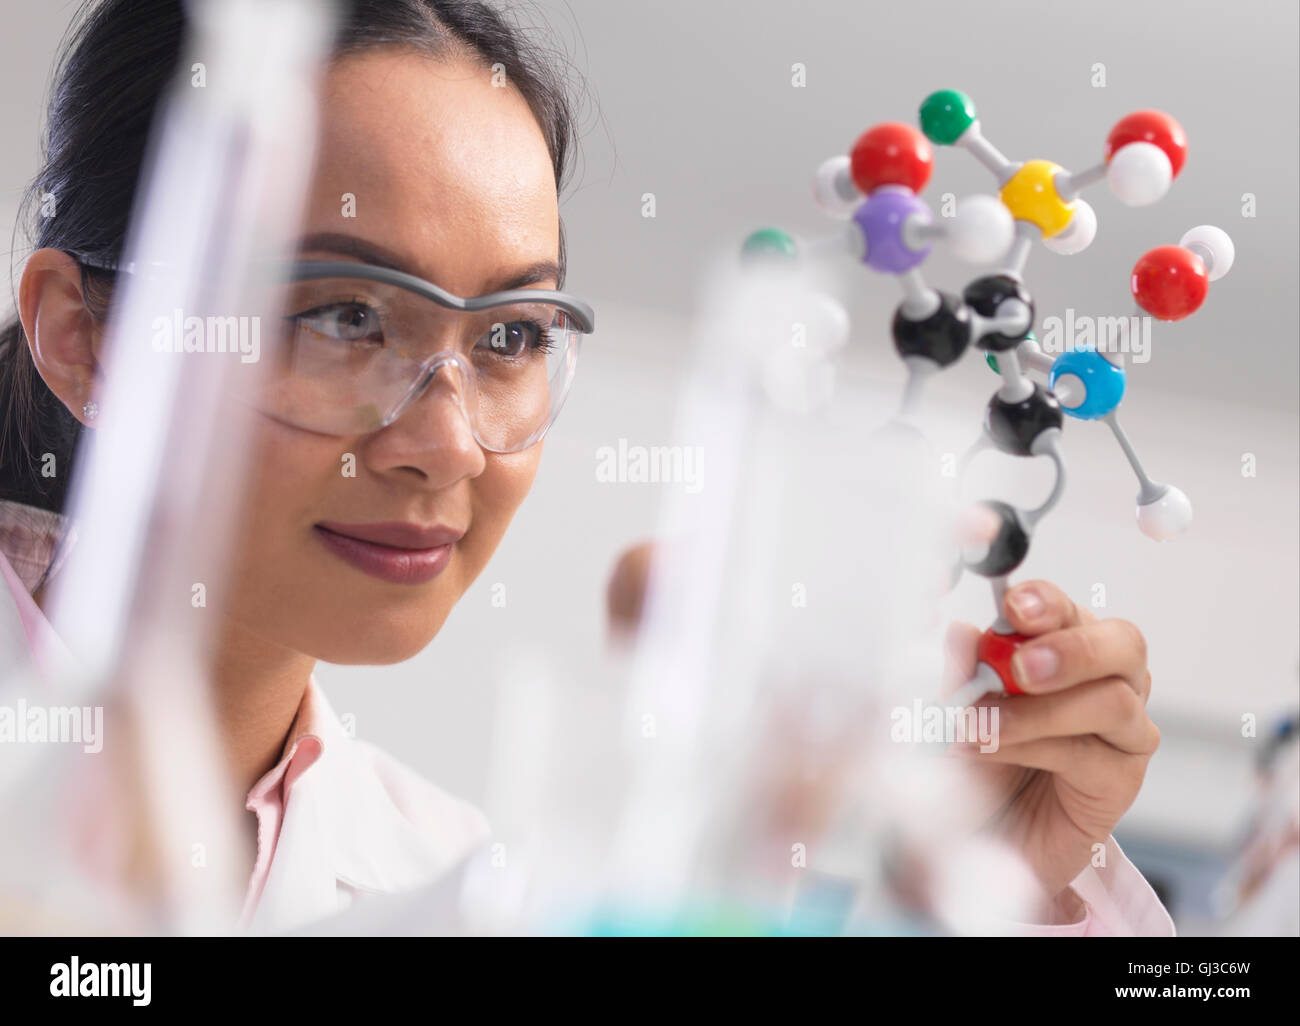 Scientist using molecular model to understand chemical formula - Stock Image